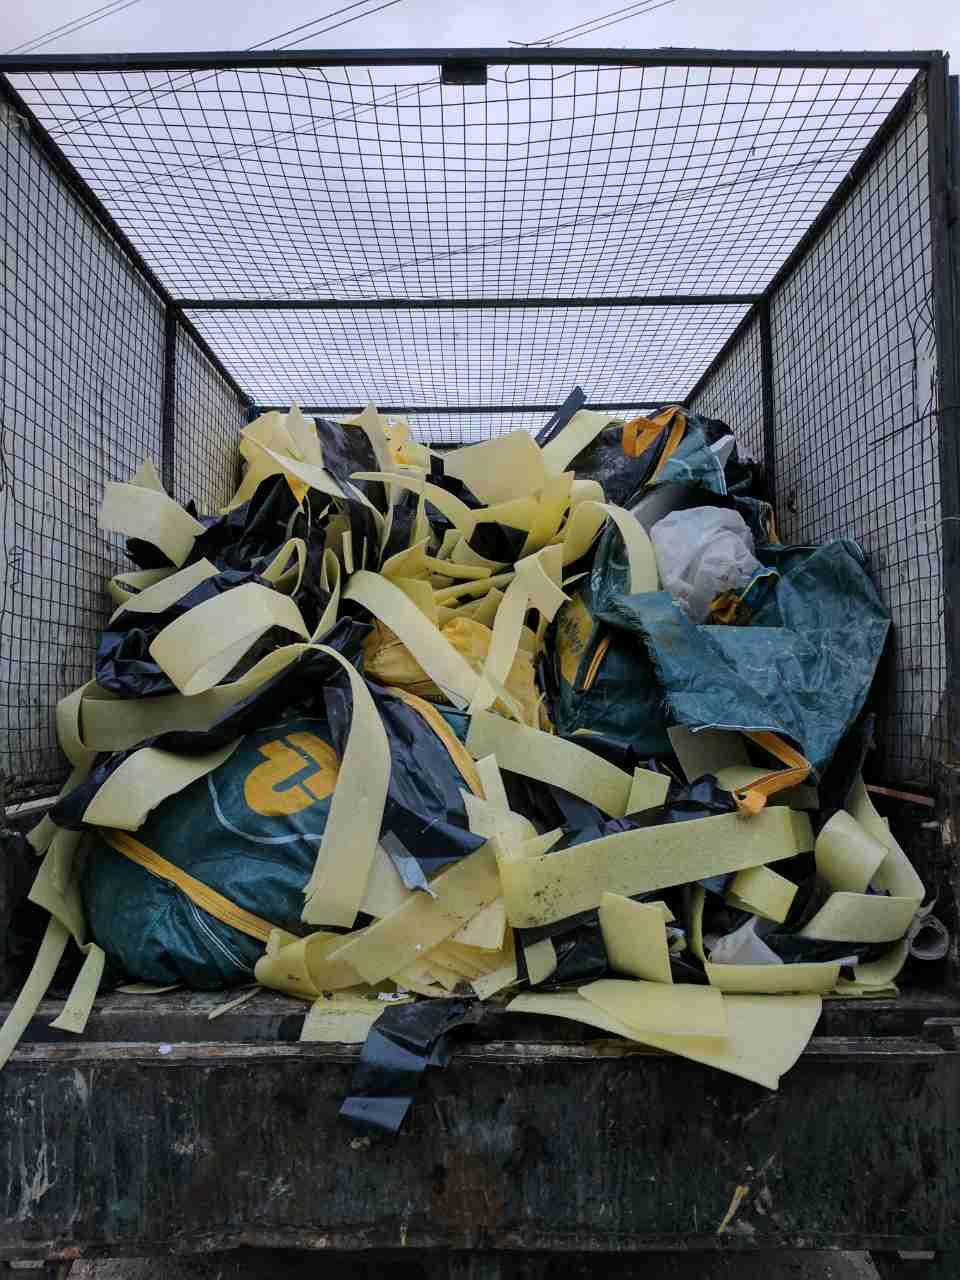 waste disposal service Finchley